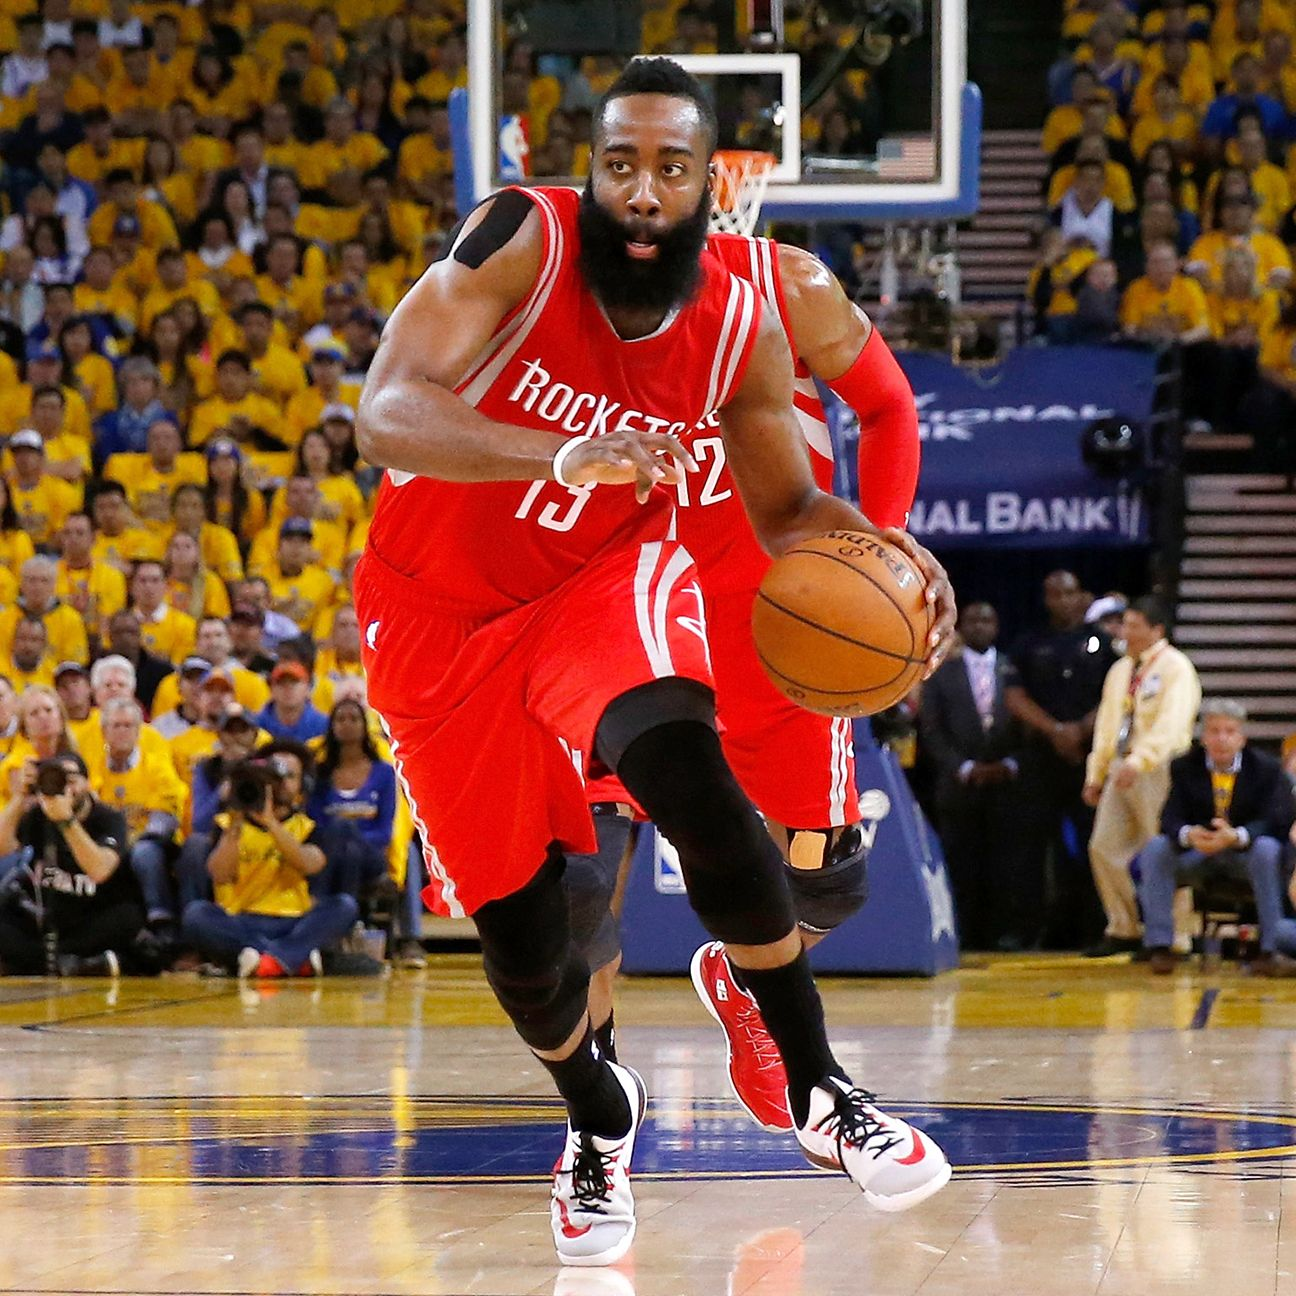 James Harden Free Agency: Nothing Cooking For James Harden With Houston Rockets